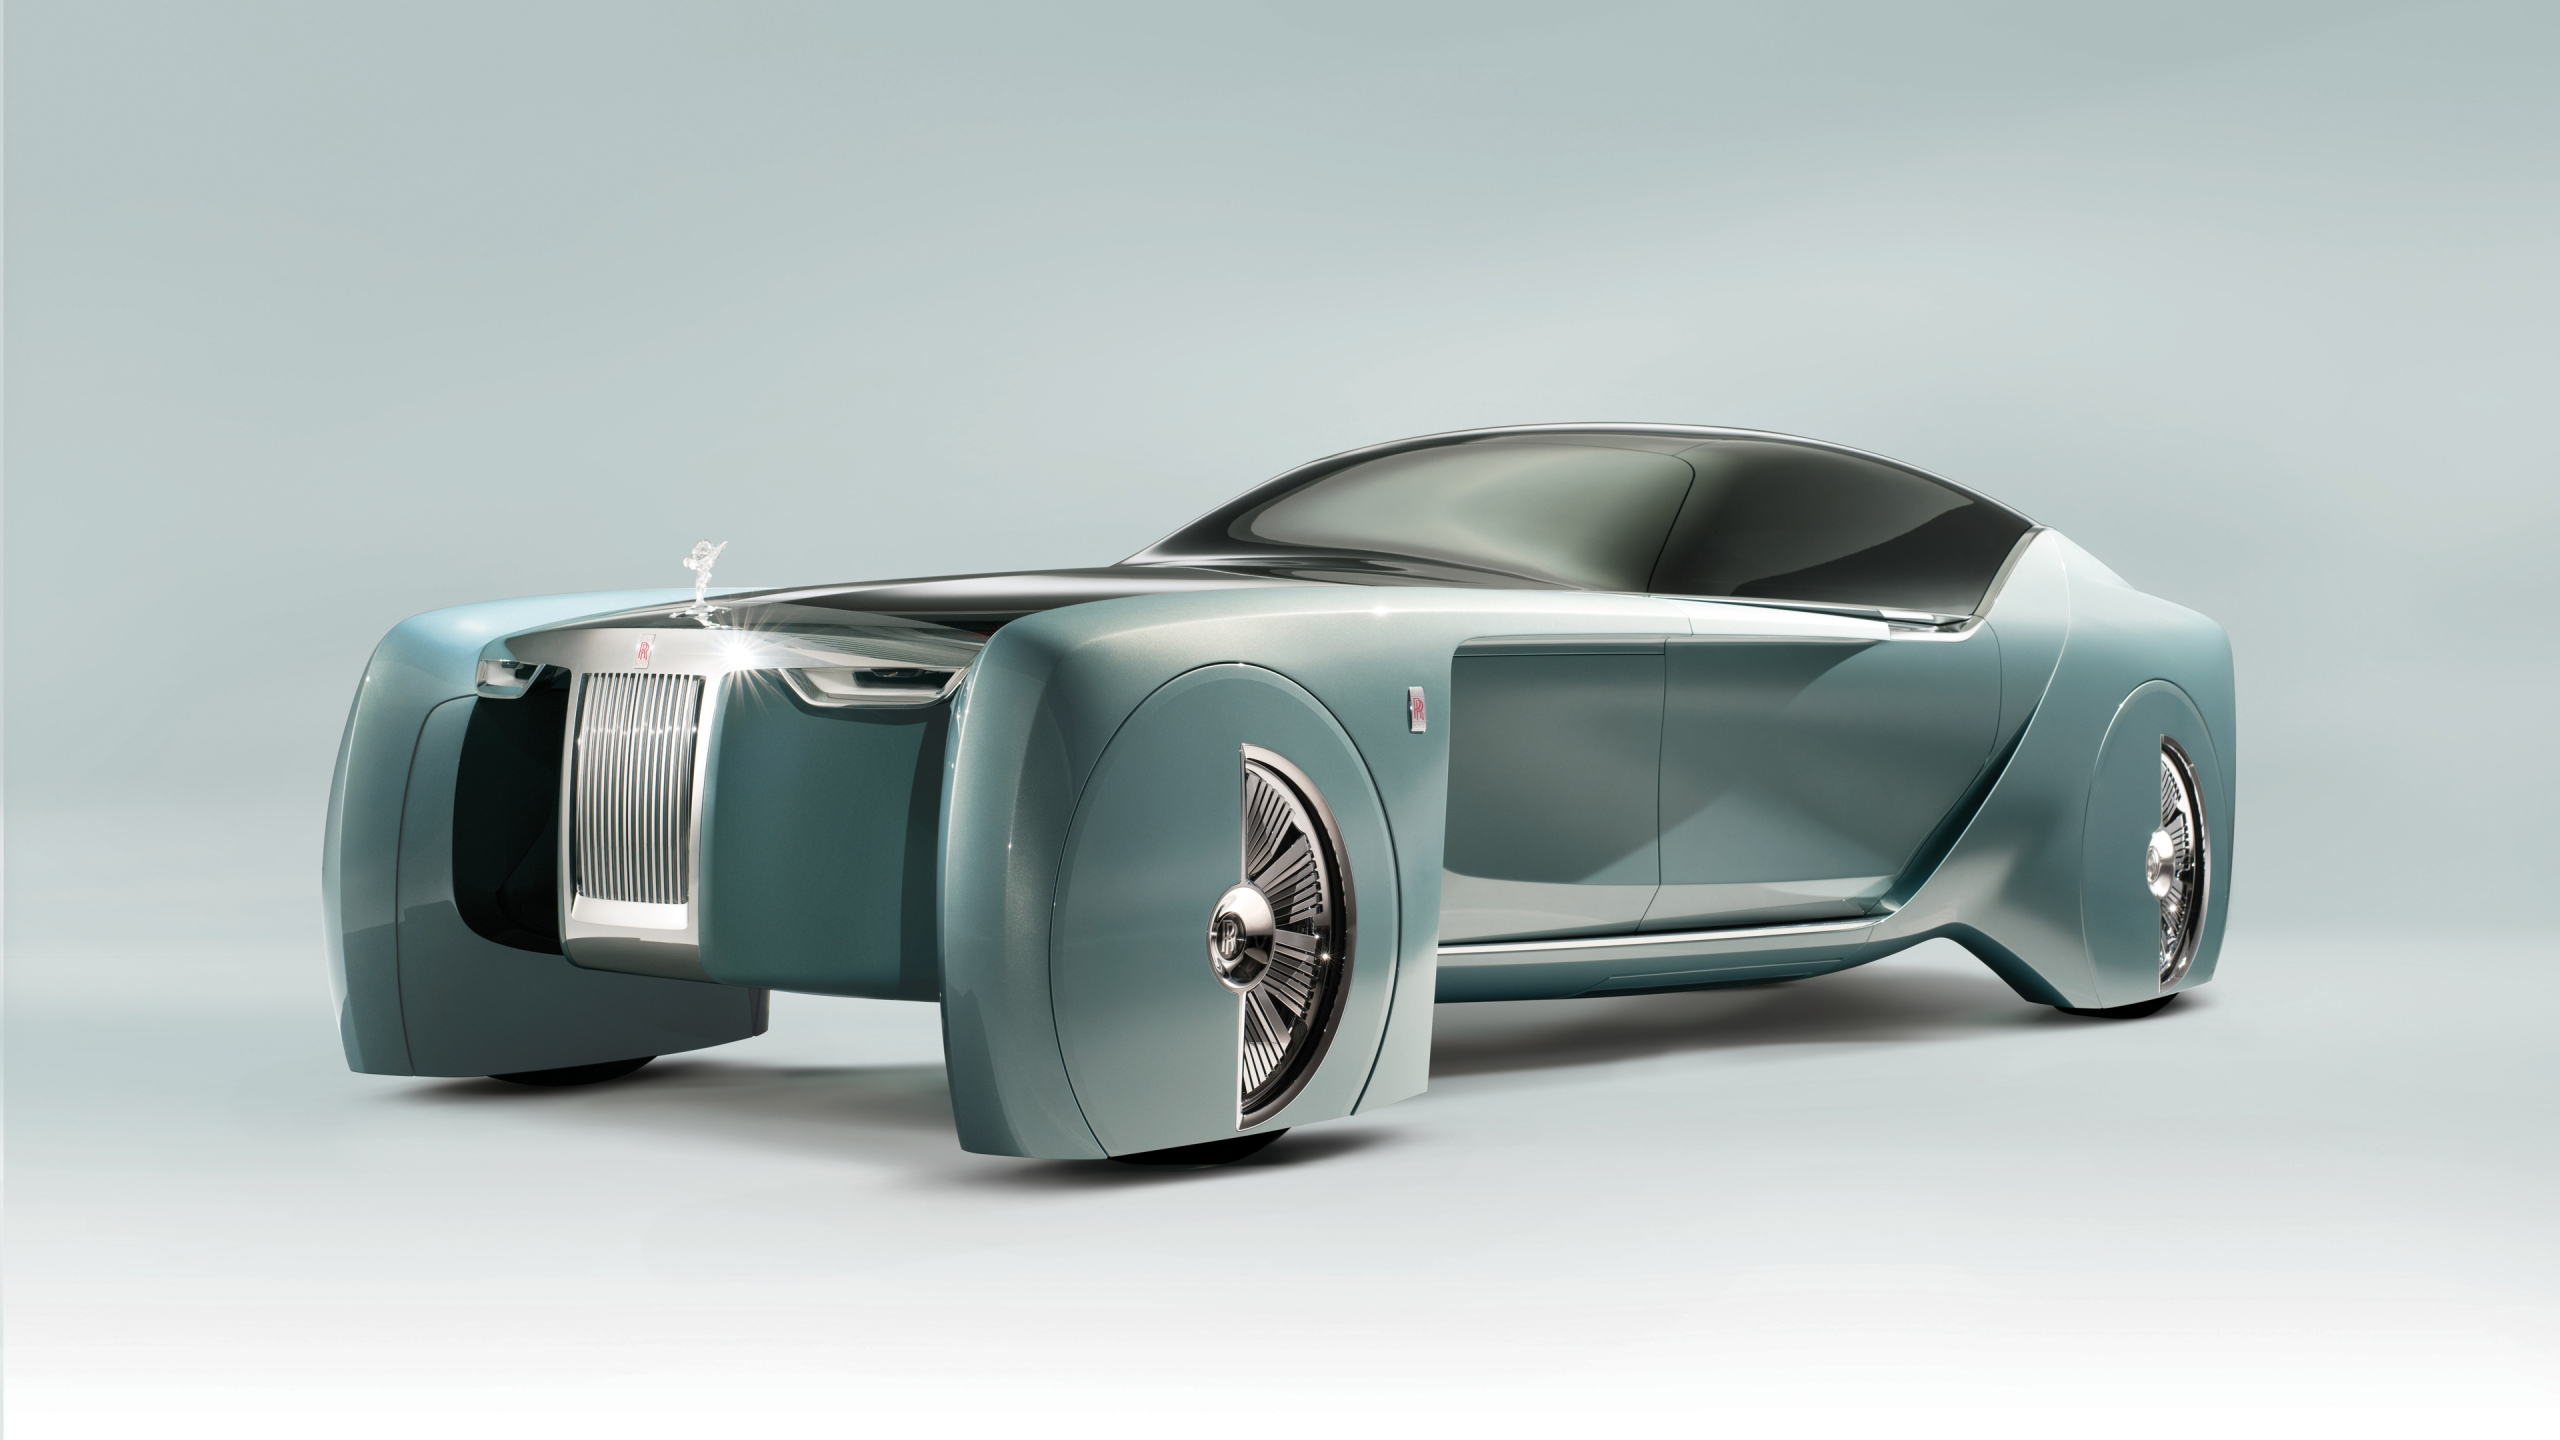 Rolls-Royce Vision Next 100 Concept 2016 - Photo 15 - Taille: 2560x1440